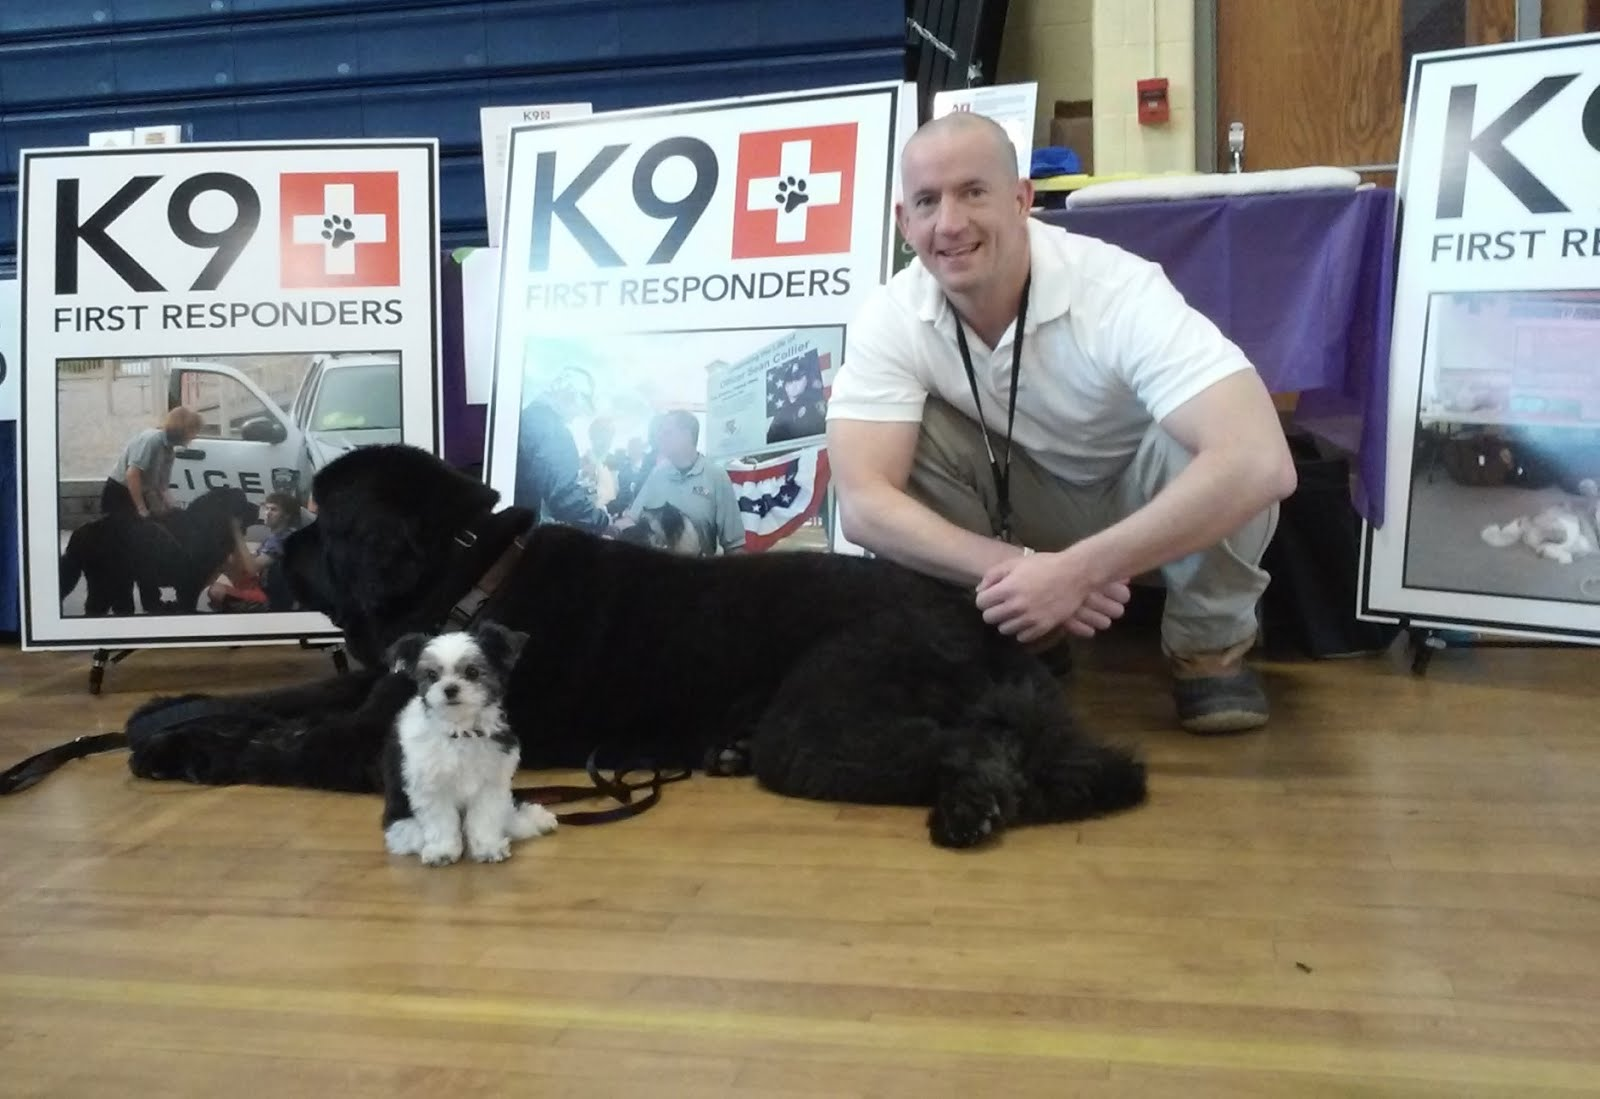 Thomas Q Kimball of Ridgefield, Connecticut with Gizmo and Socrates K9 First Responders, Inc.